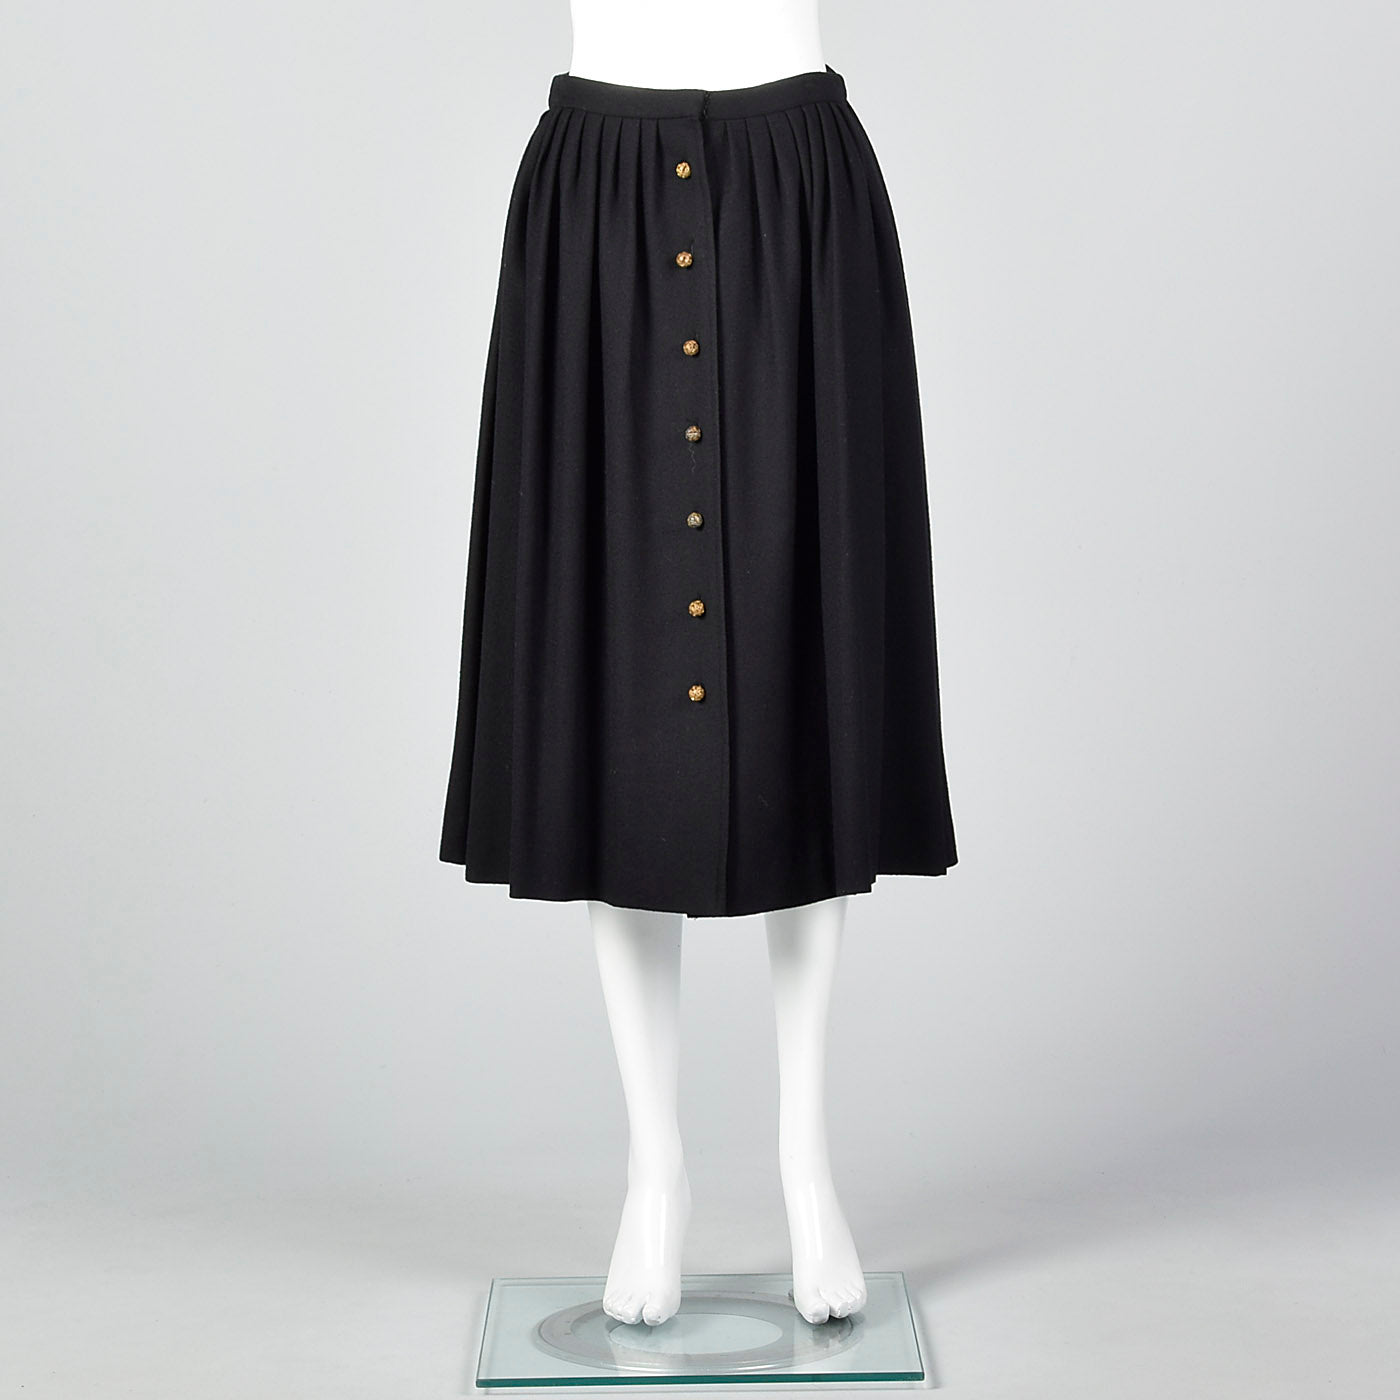 1970s Chloe Timeless  Black Wool Skirt with Gold Buttons, Karl Lagerfeld era